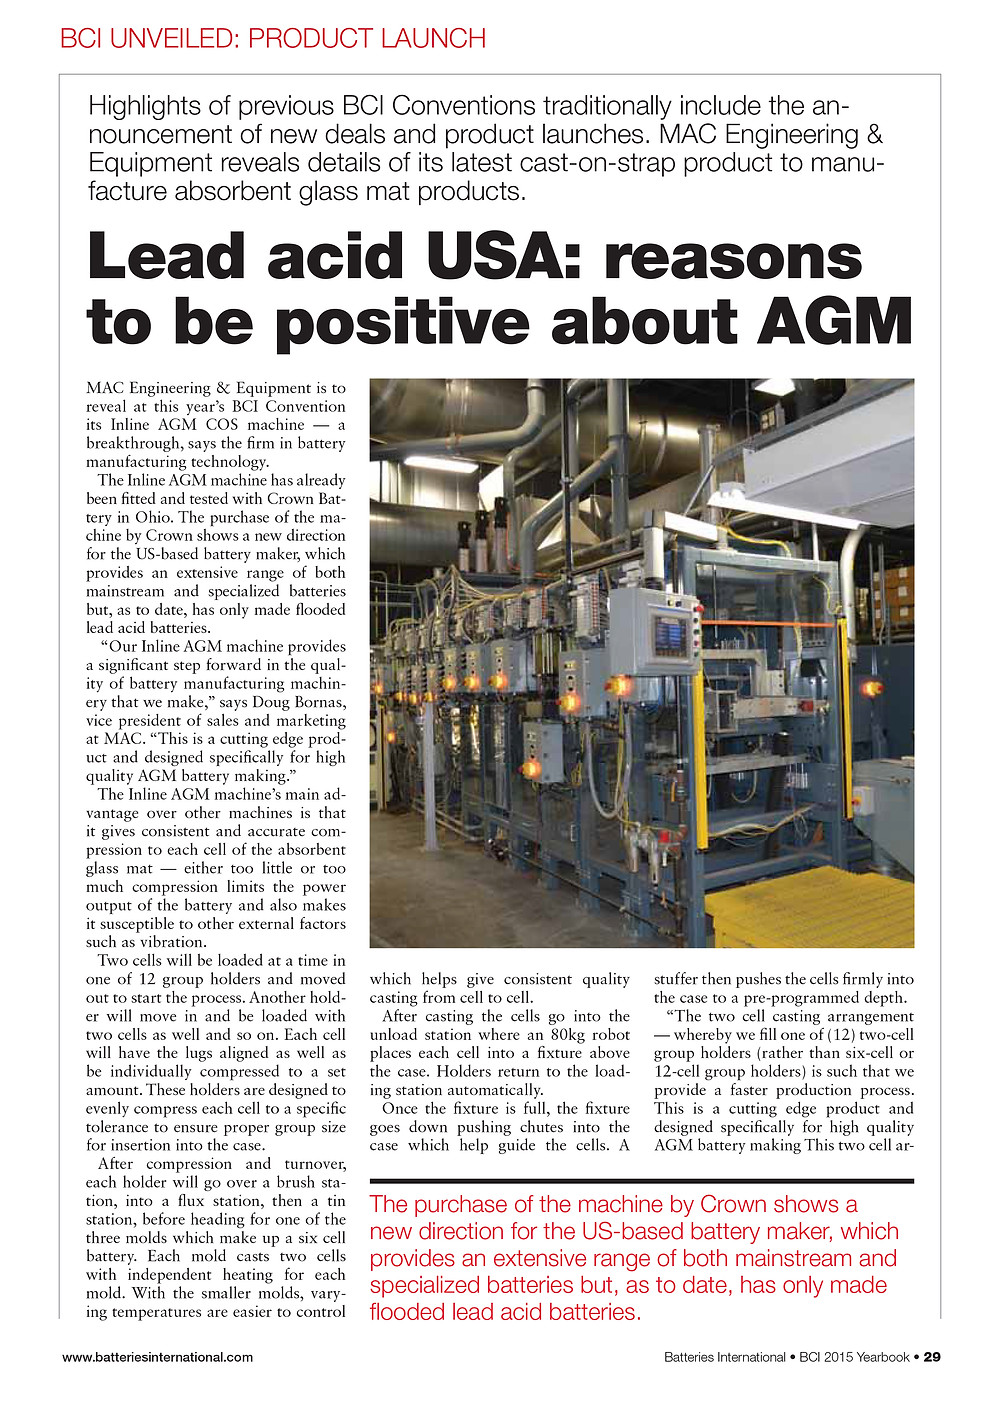 MAC Engineering & Equipment reveals details of its latest cast-on-strap product to manufacture absorbent glass mat products.